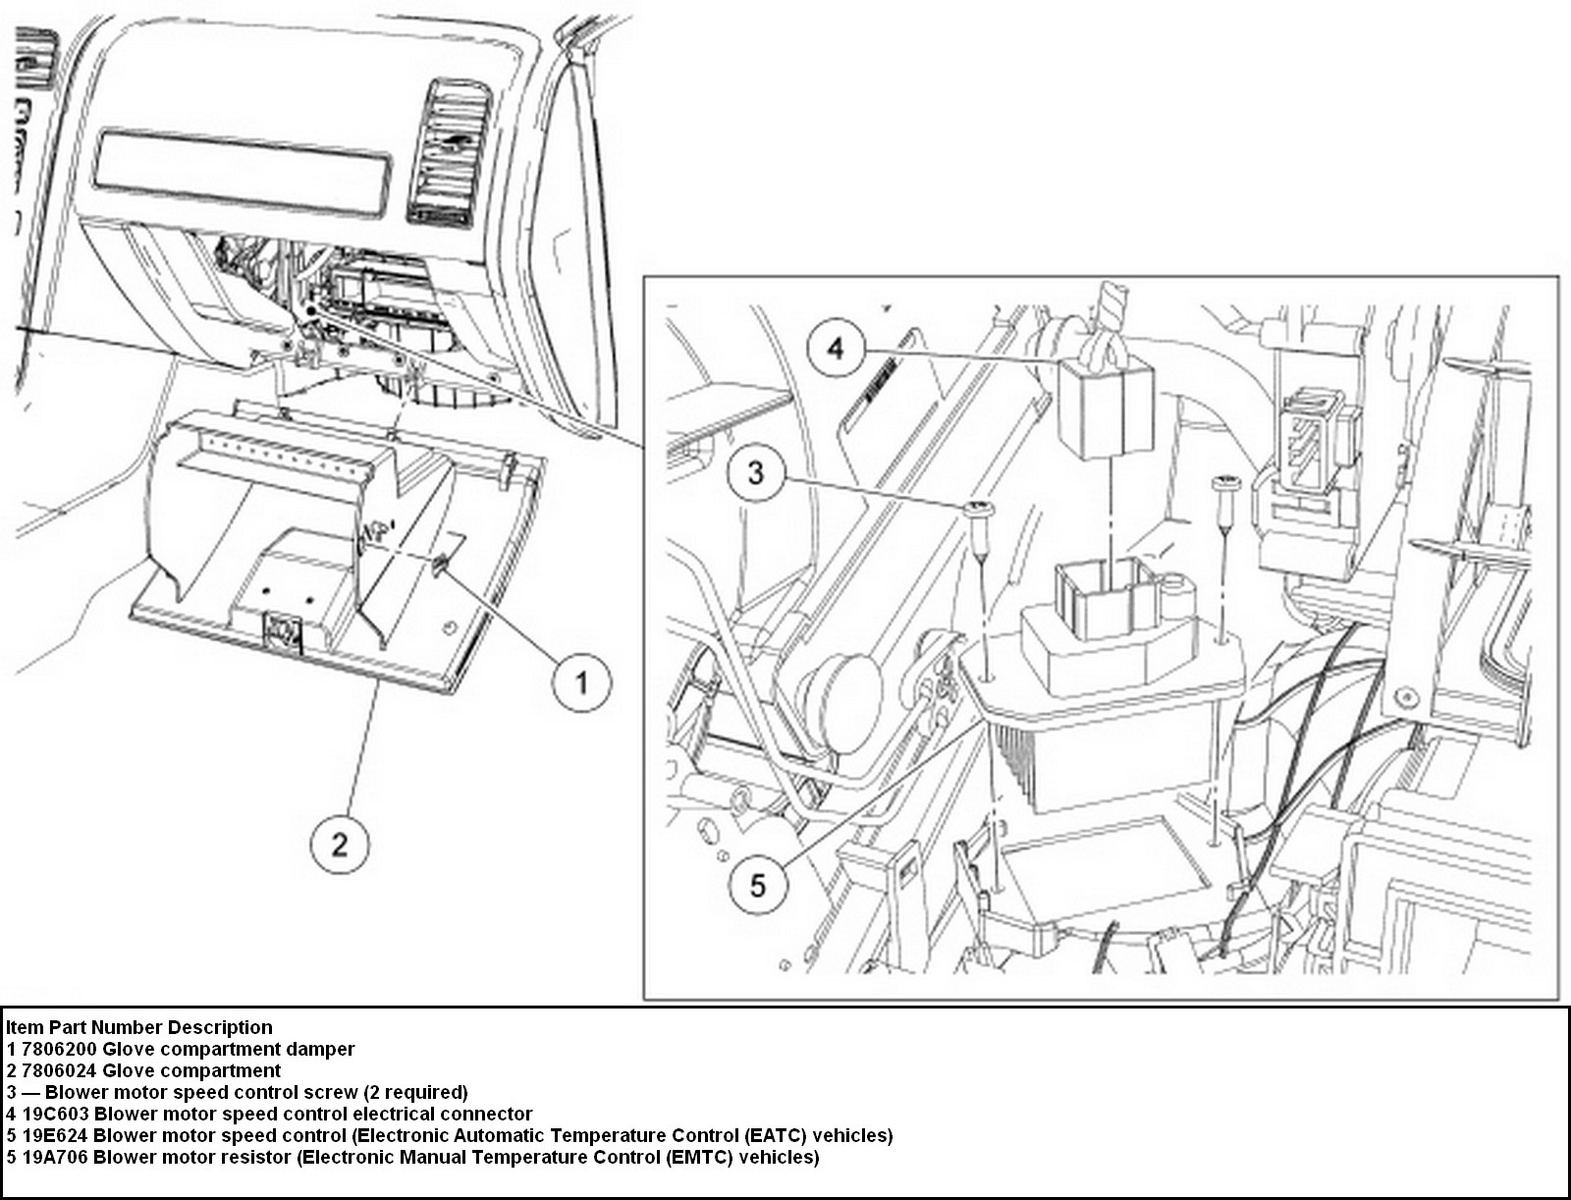 Ford Flex V6 3 0 Engine Diagram Wiring Libraries 2002 Edge Questions How Do You Remove And Replace Install A Blowerford